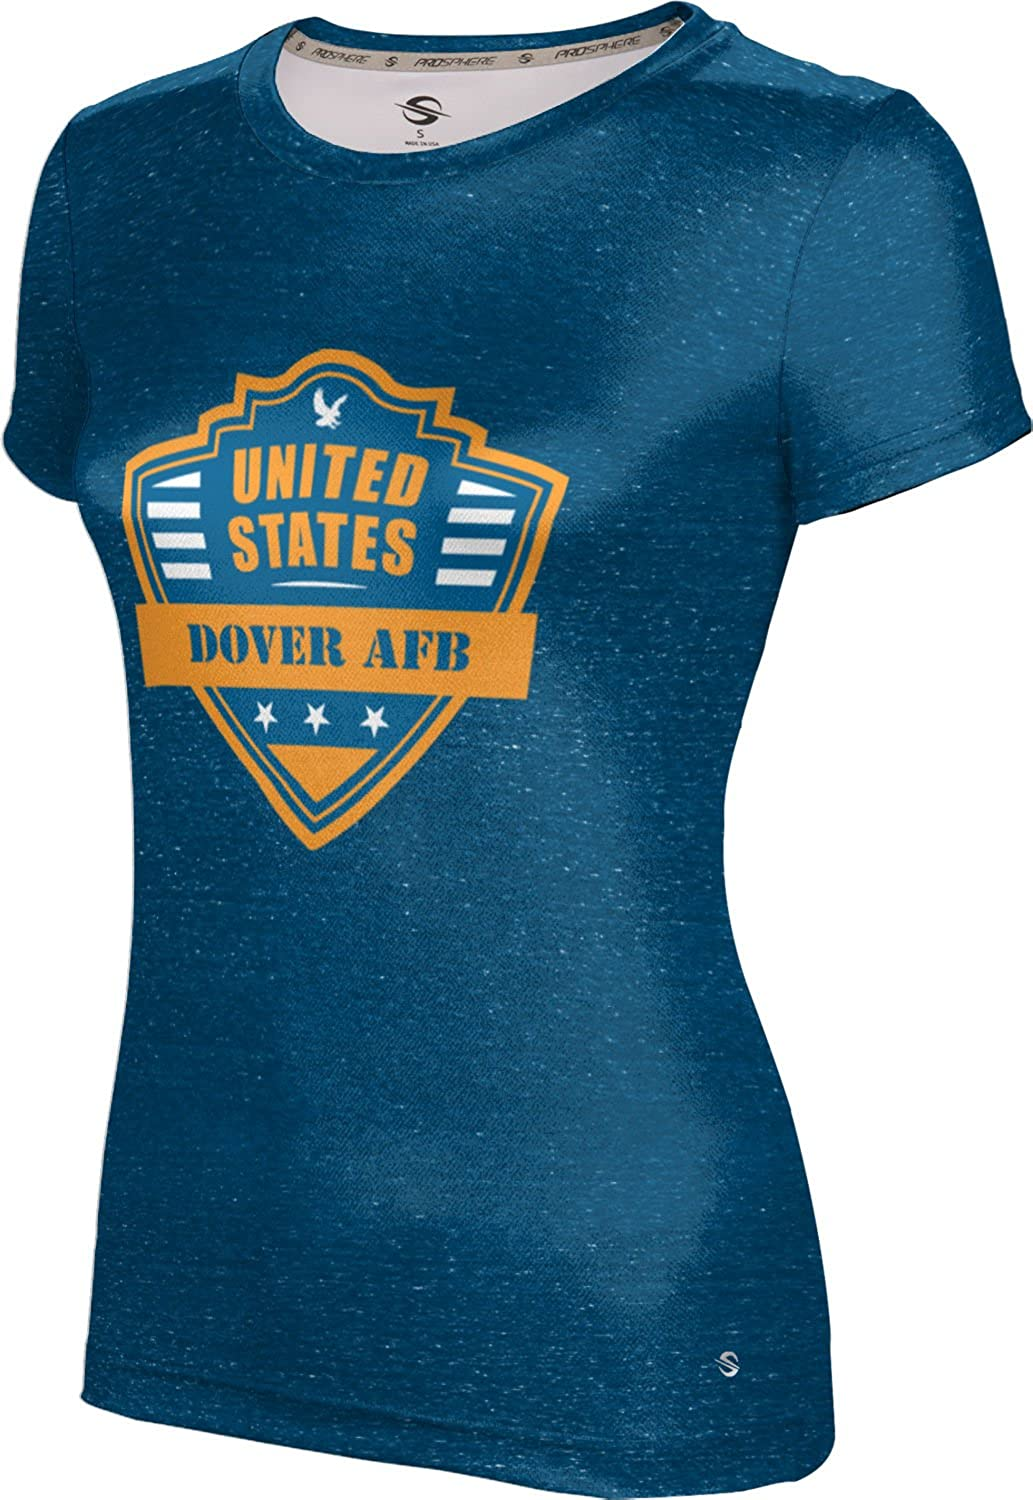 ProSphere Women's Dover AFB Military Heather Tech Tee